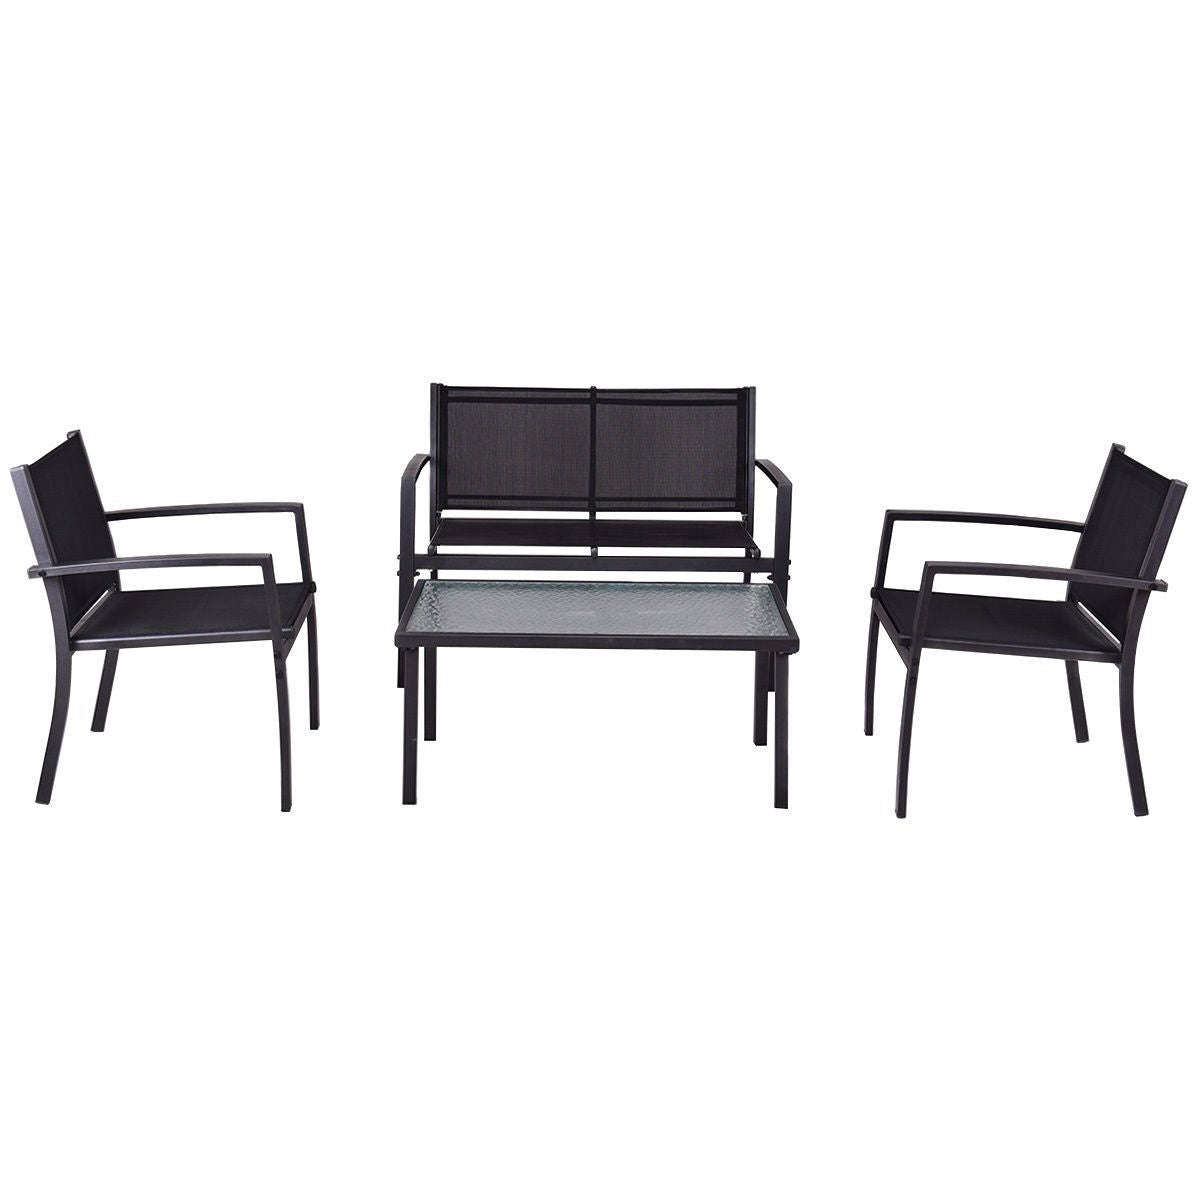 Modern 4 Piece Outdoor Patio Furniture Set With Sling Chairs And Coffee  Table